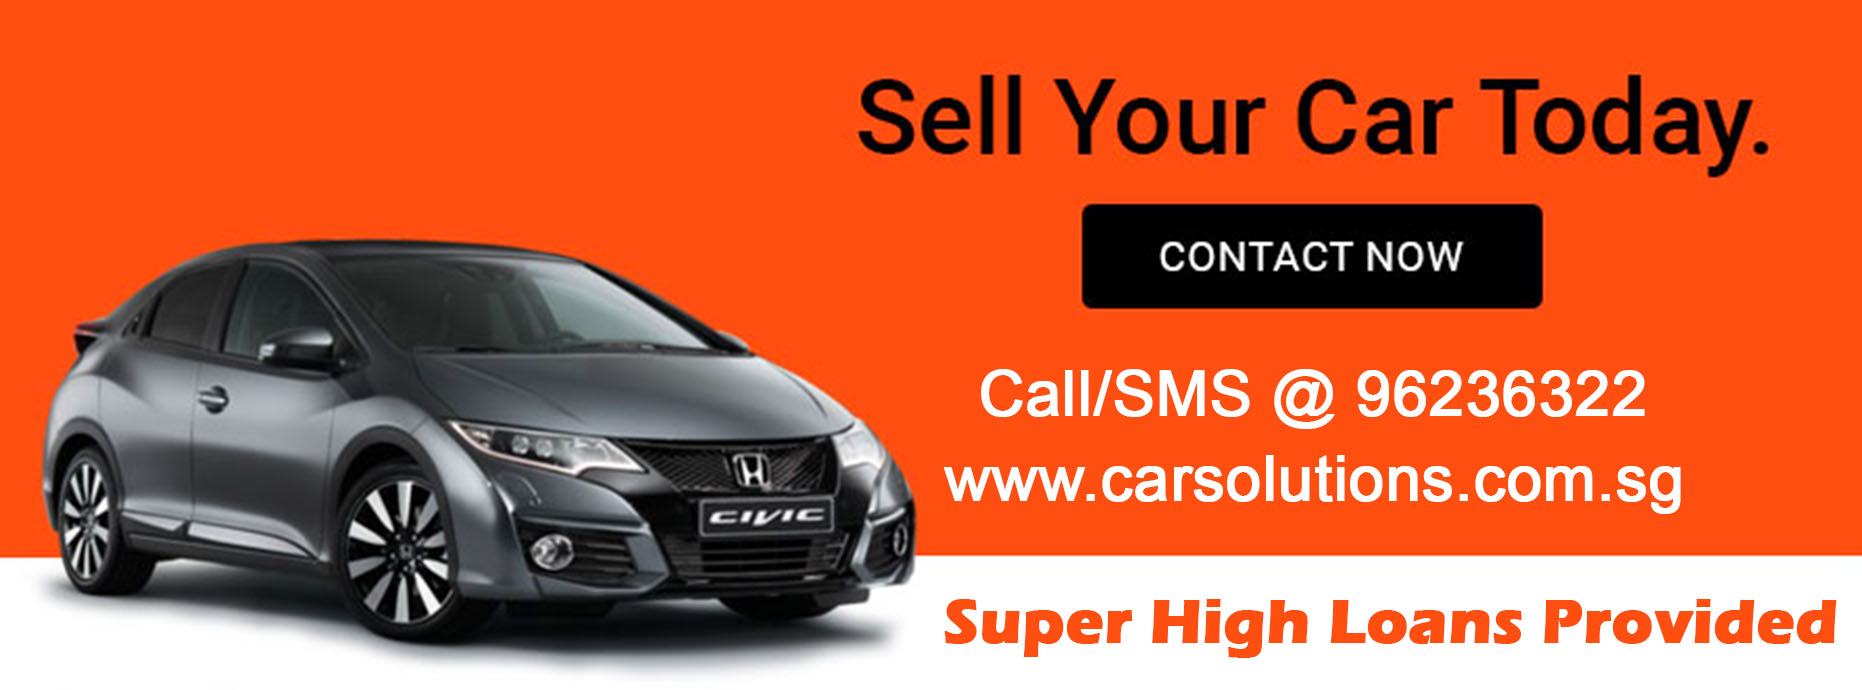 High Car Loan | Sell Your Car Fast Today